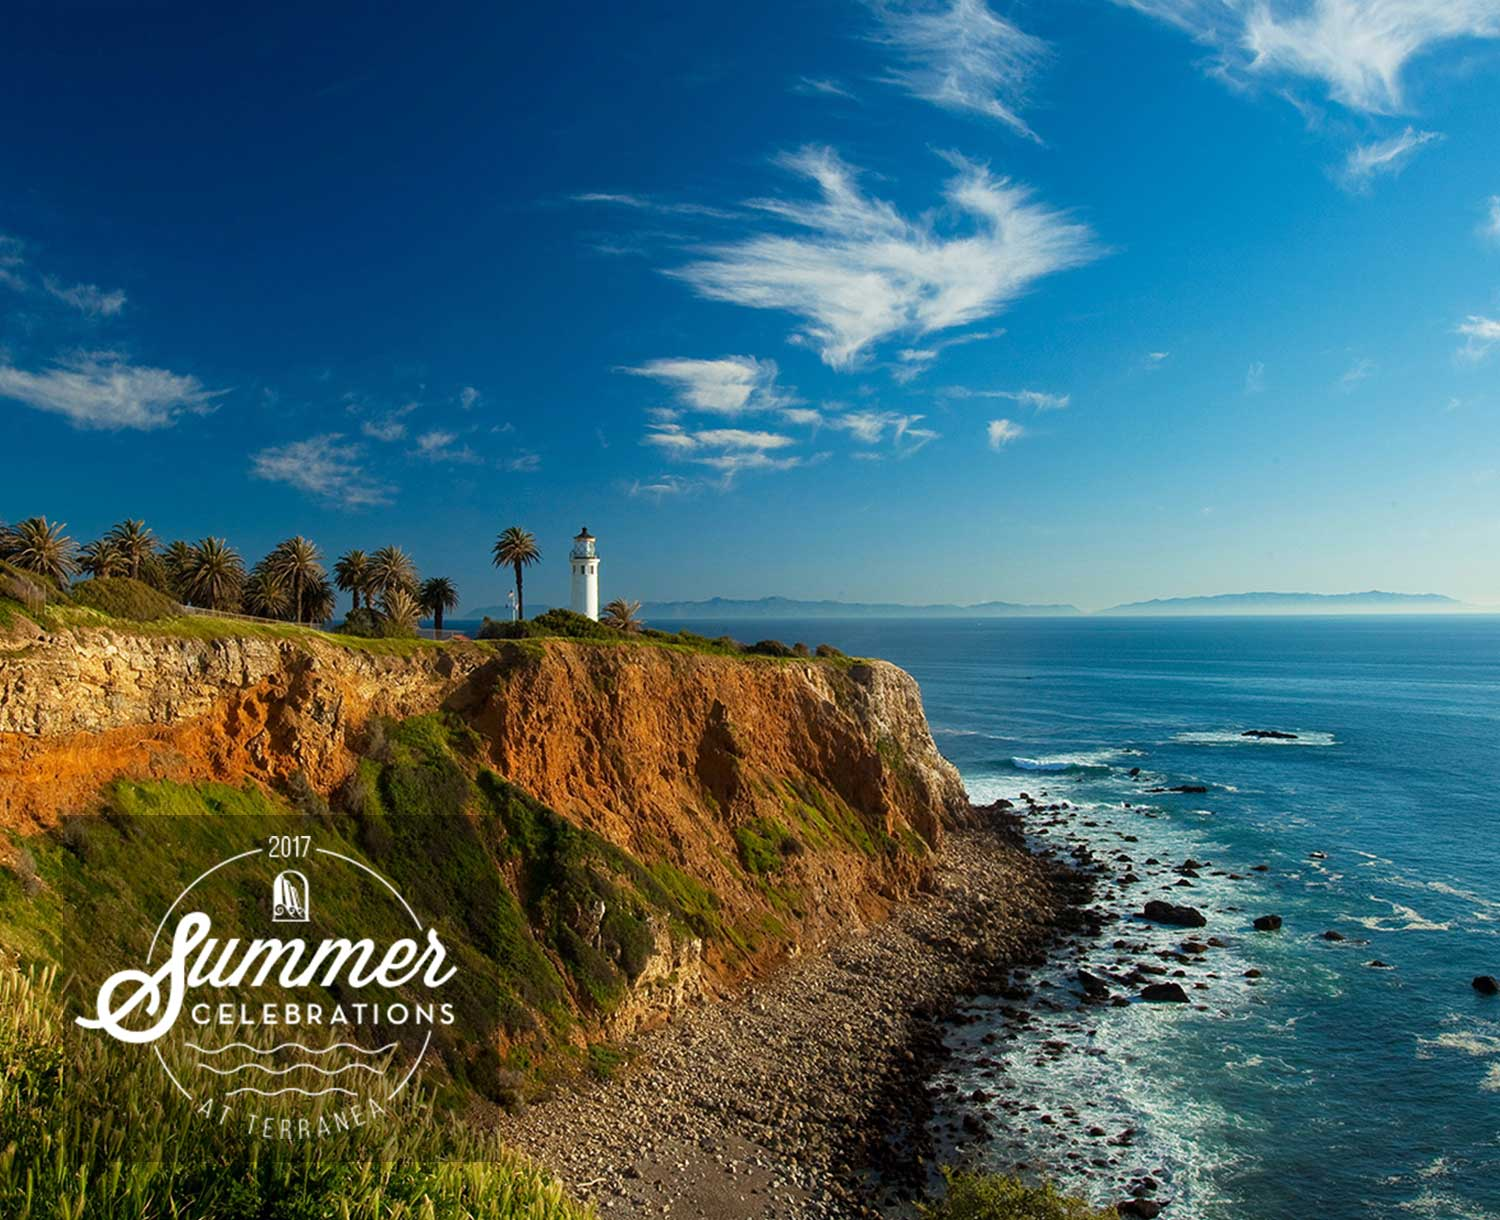 Terranea Resort | Celebration Activities